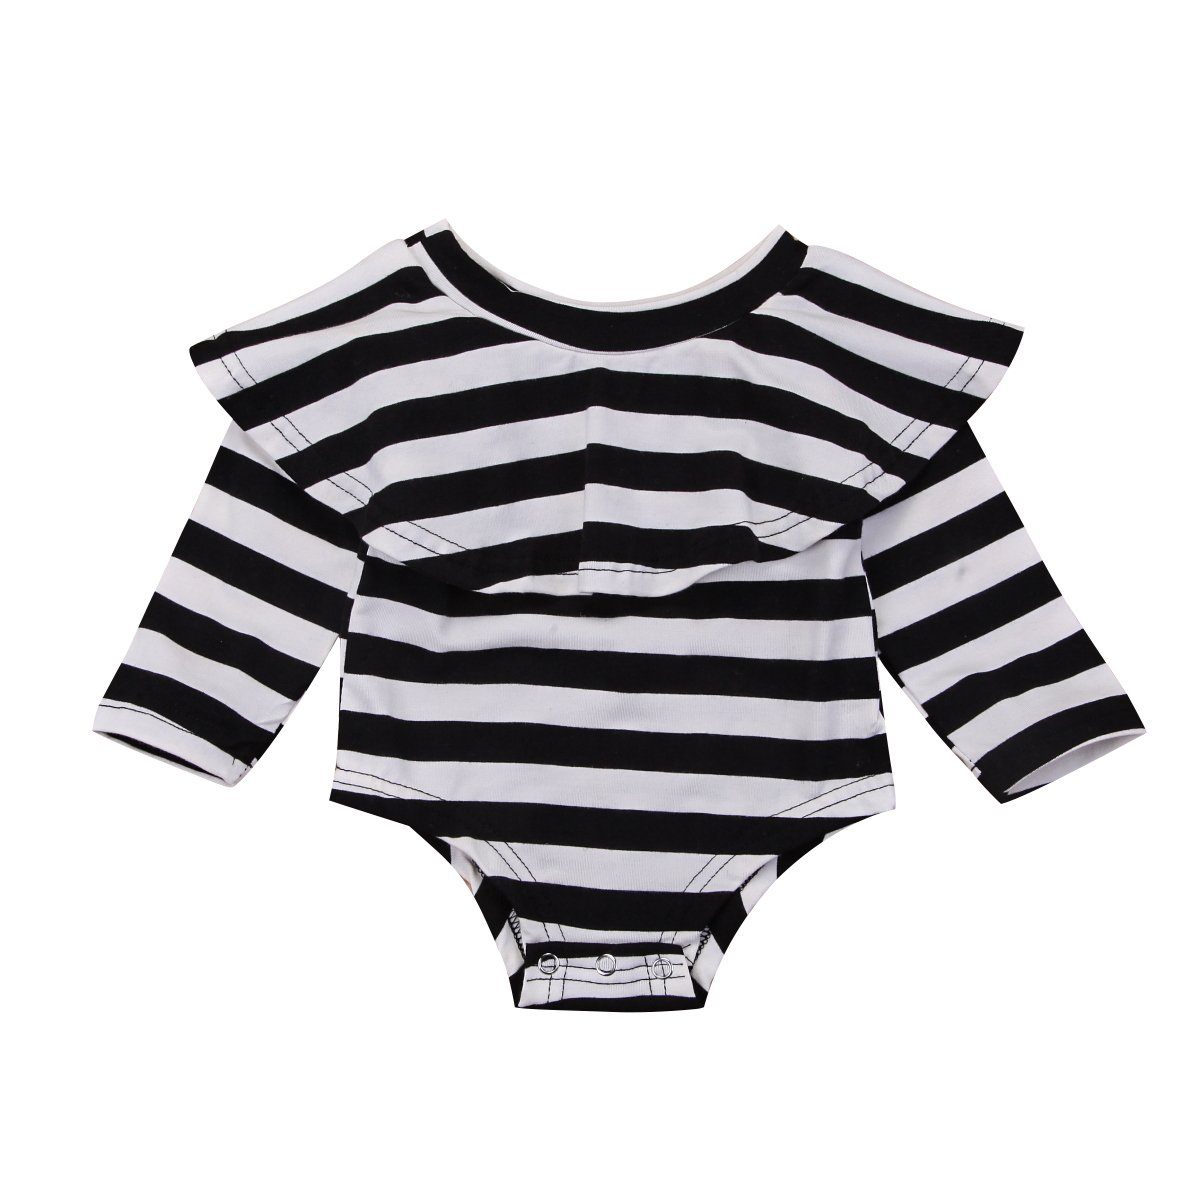 3cc790b8feea Amazon.com  Mornbaby Infant Baby Girl Romper Twins Long Sleeve Jumpsuit Off-Shoulder  Ruffled Newborn Bodysuit Outfit Clothes  Clothing